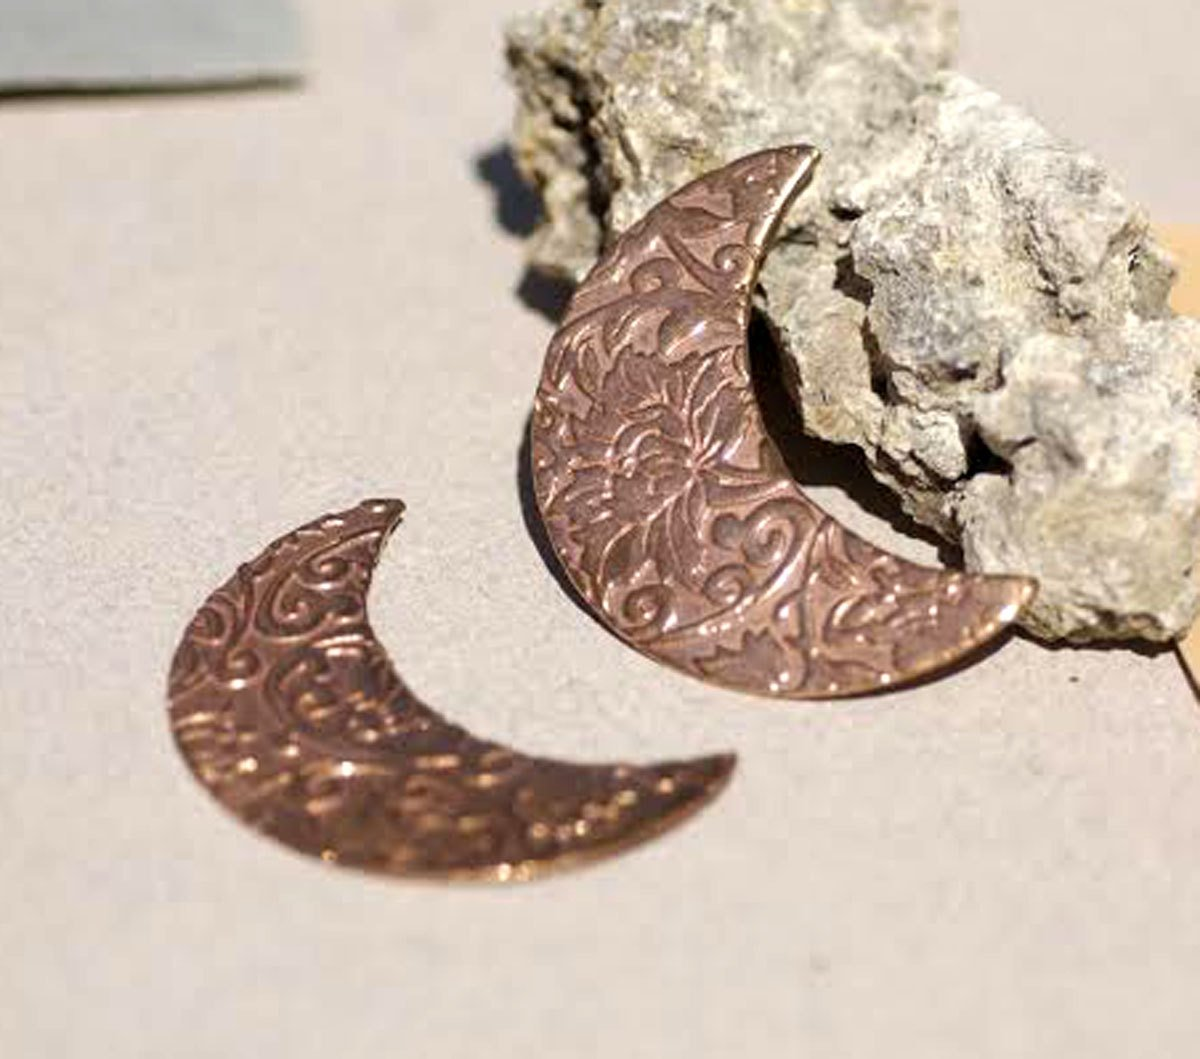 Moon with Lotus Flowers Texture Enameling Stamping Texturing Metalworking Blanks - Variety of Metals